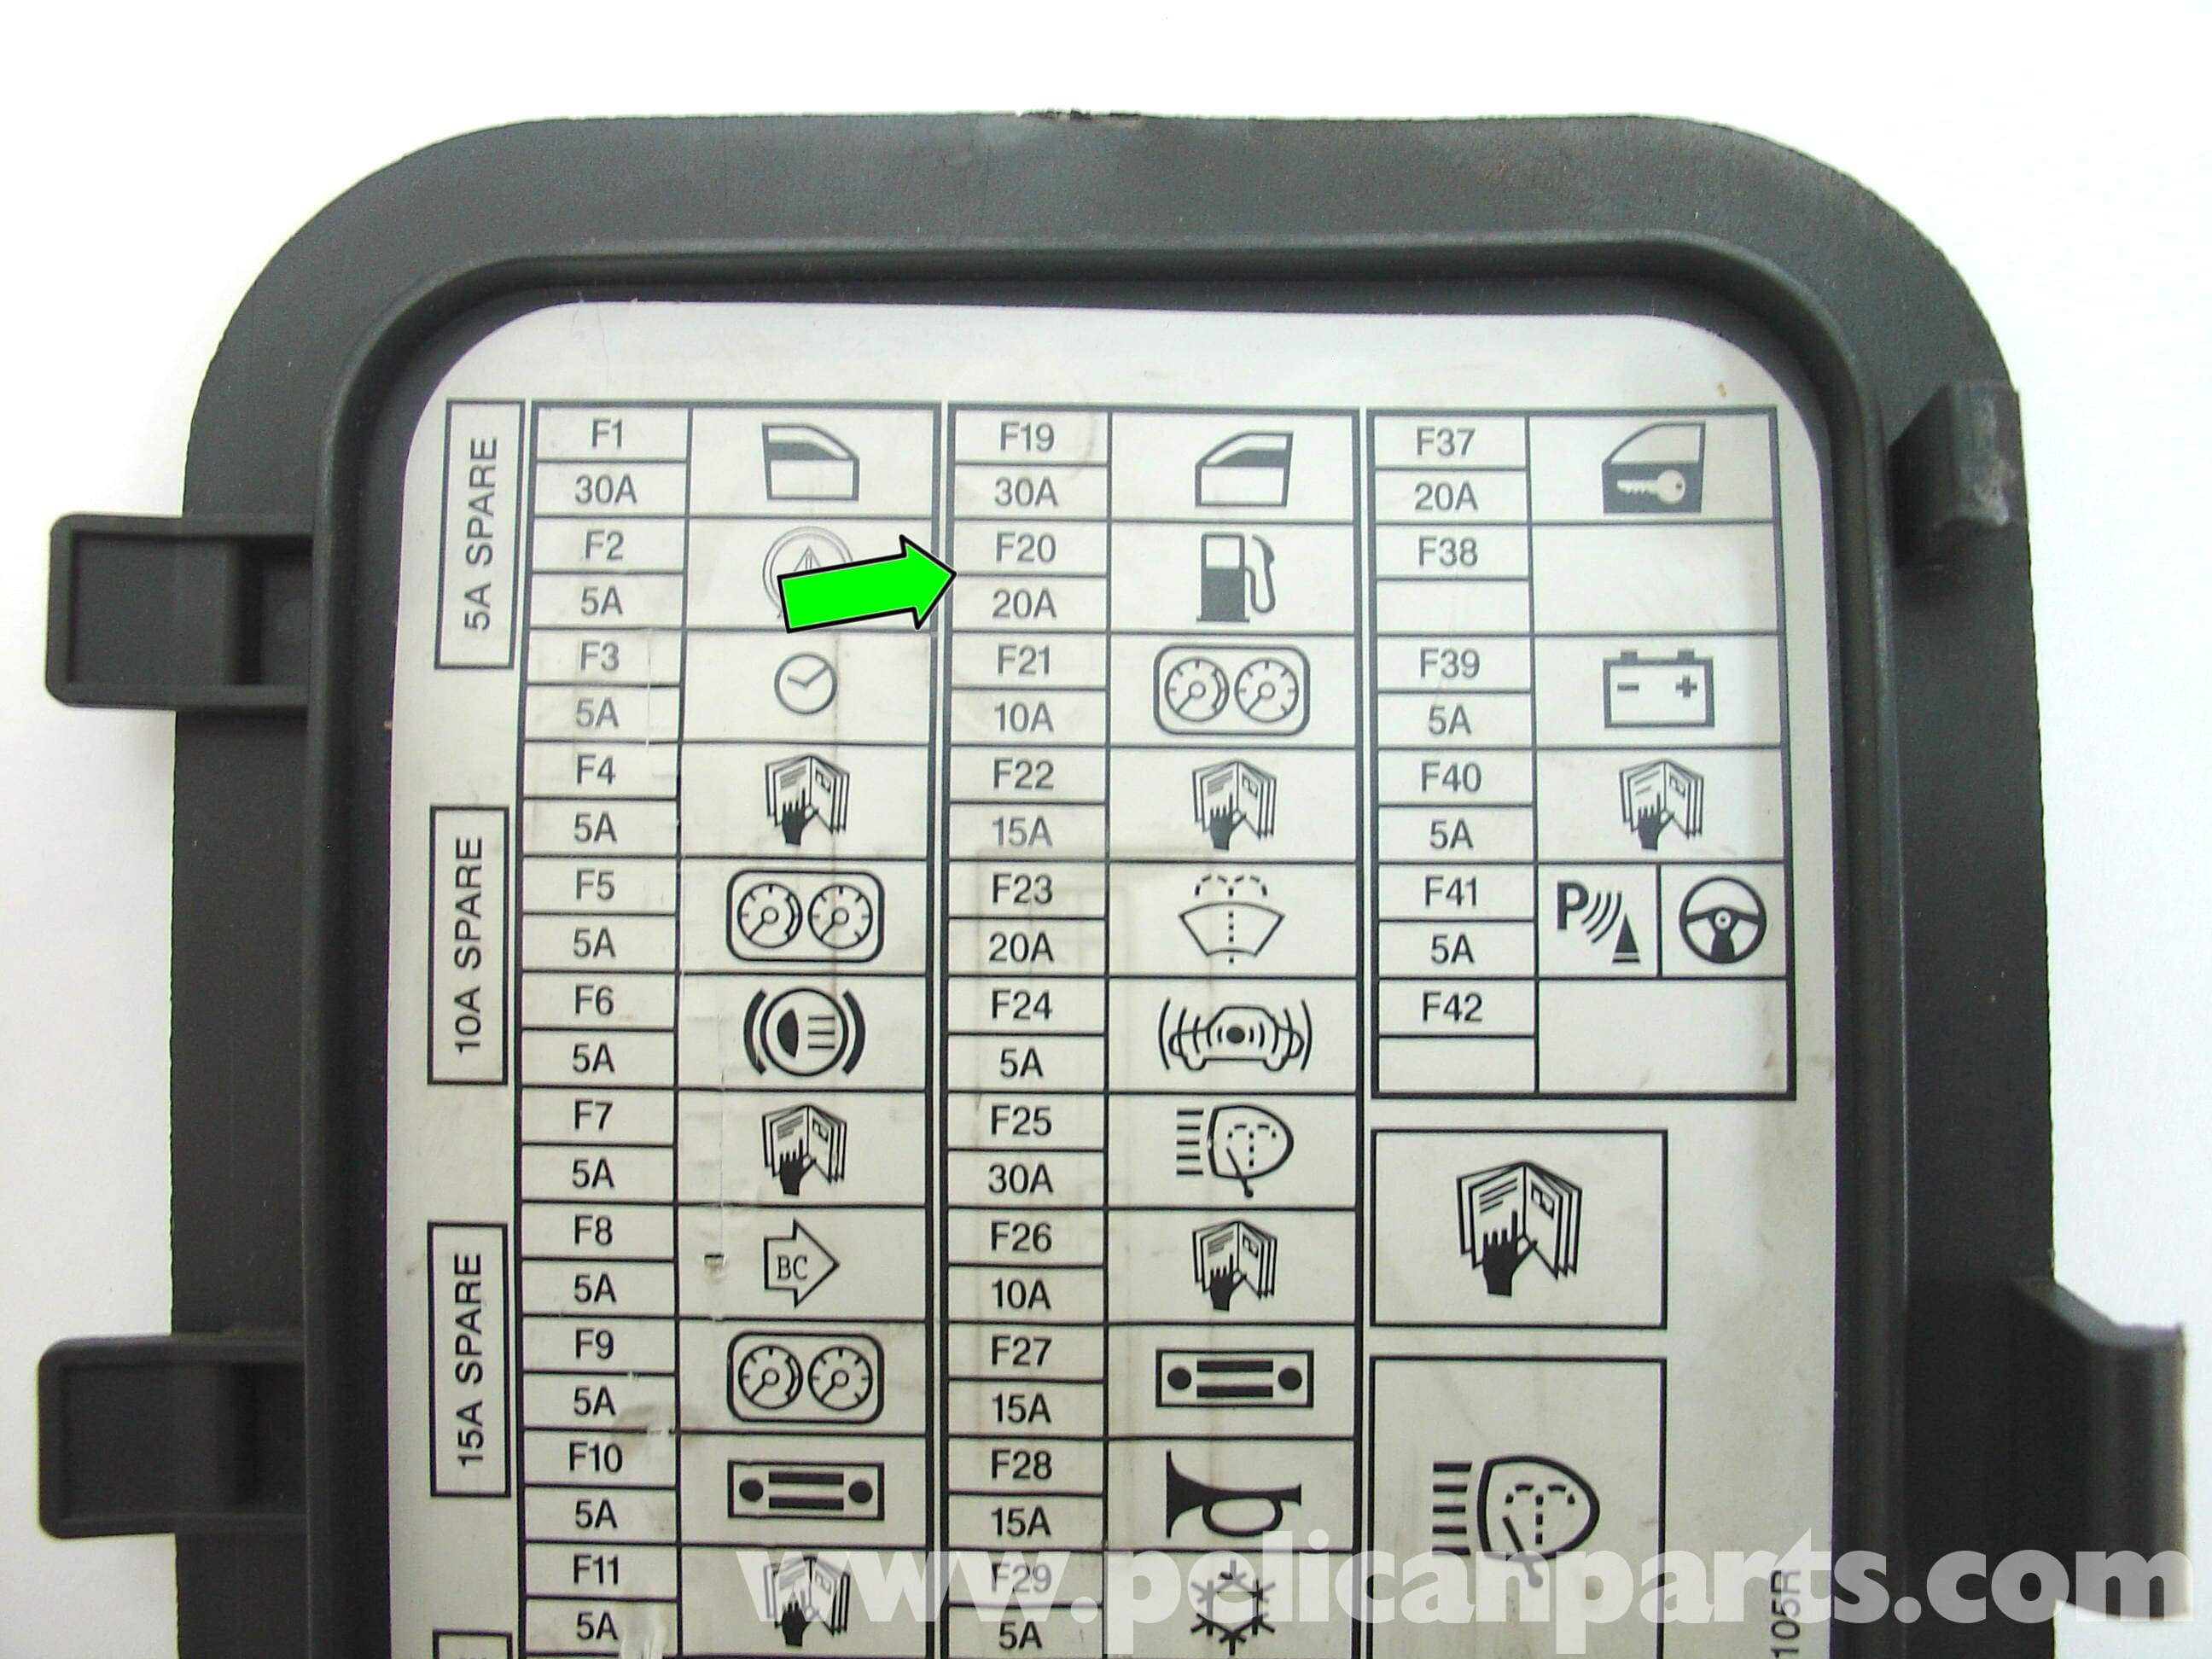 2011 Ford E250 Fuse Panel Diagram Wiring Library 2006 Mini Cooper Simple 2007